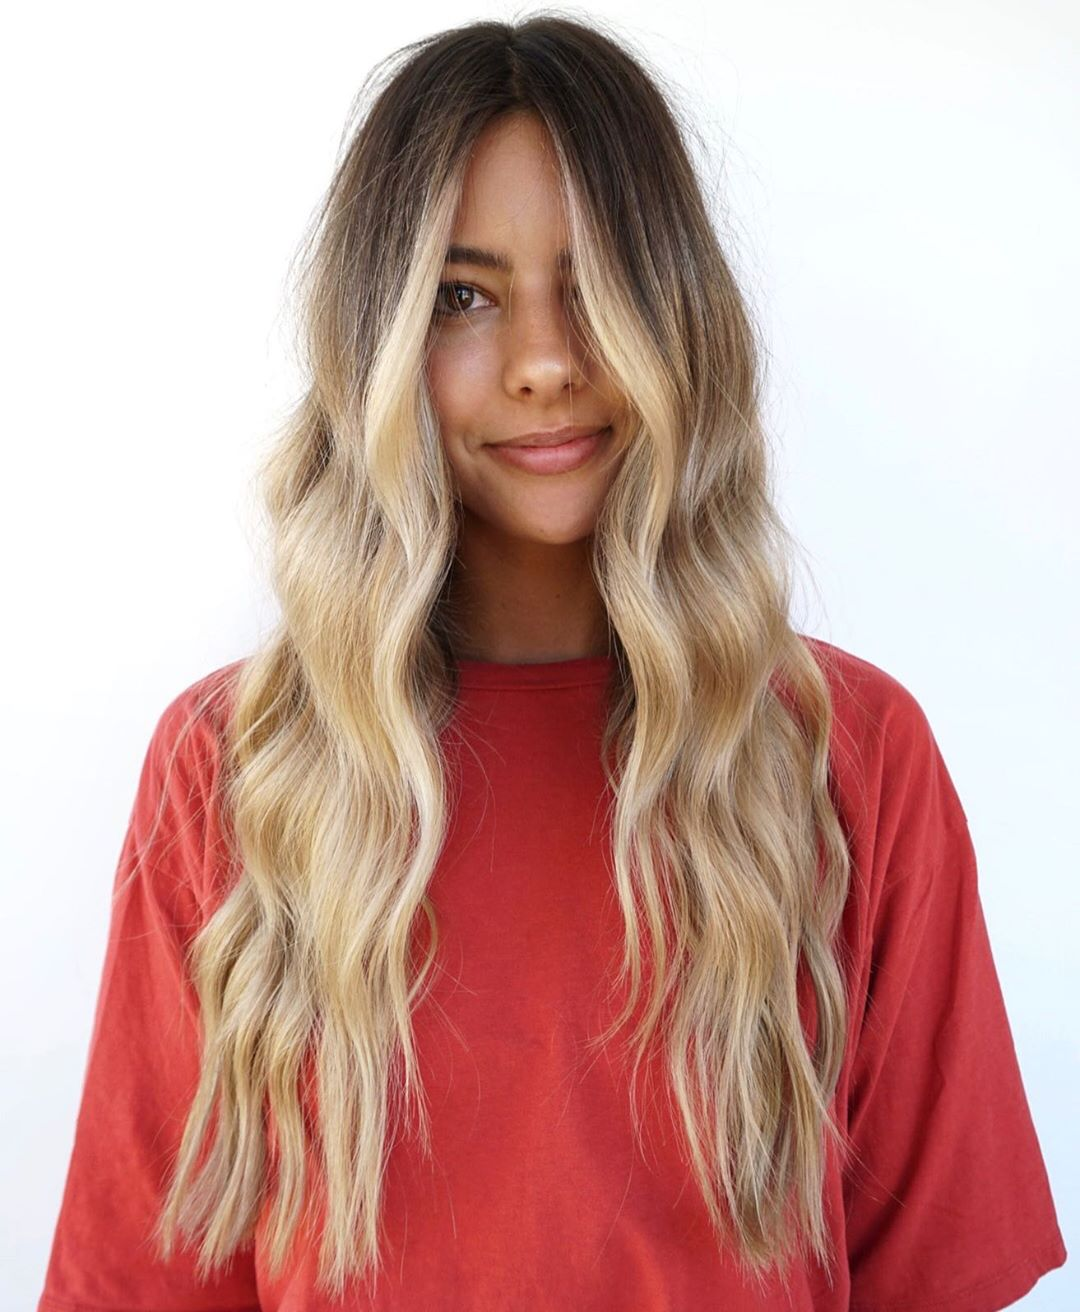 Blonde Hair Color with Highlights for Tan Skin